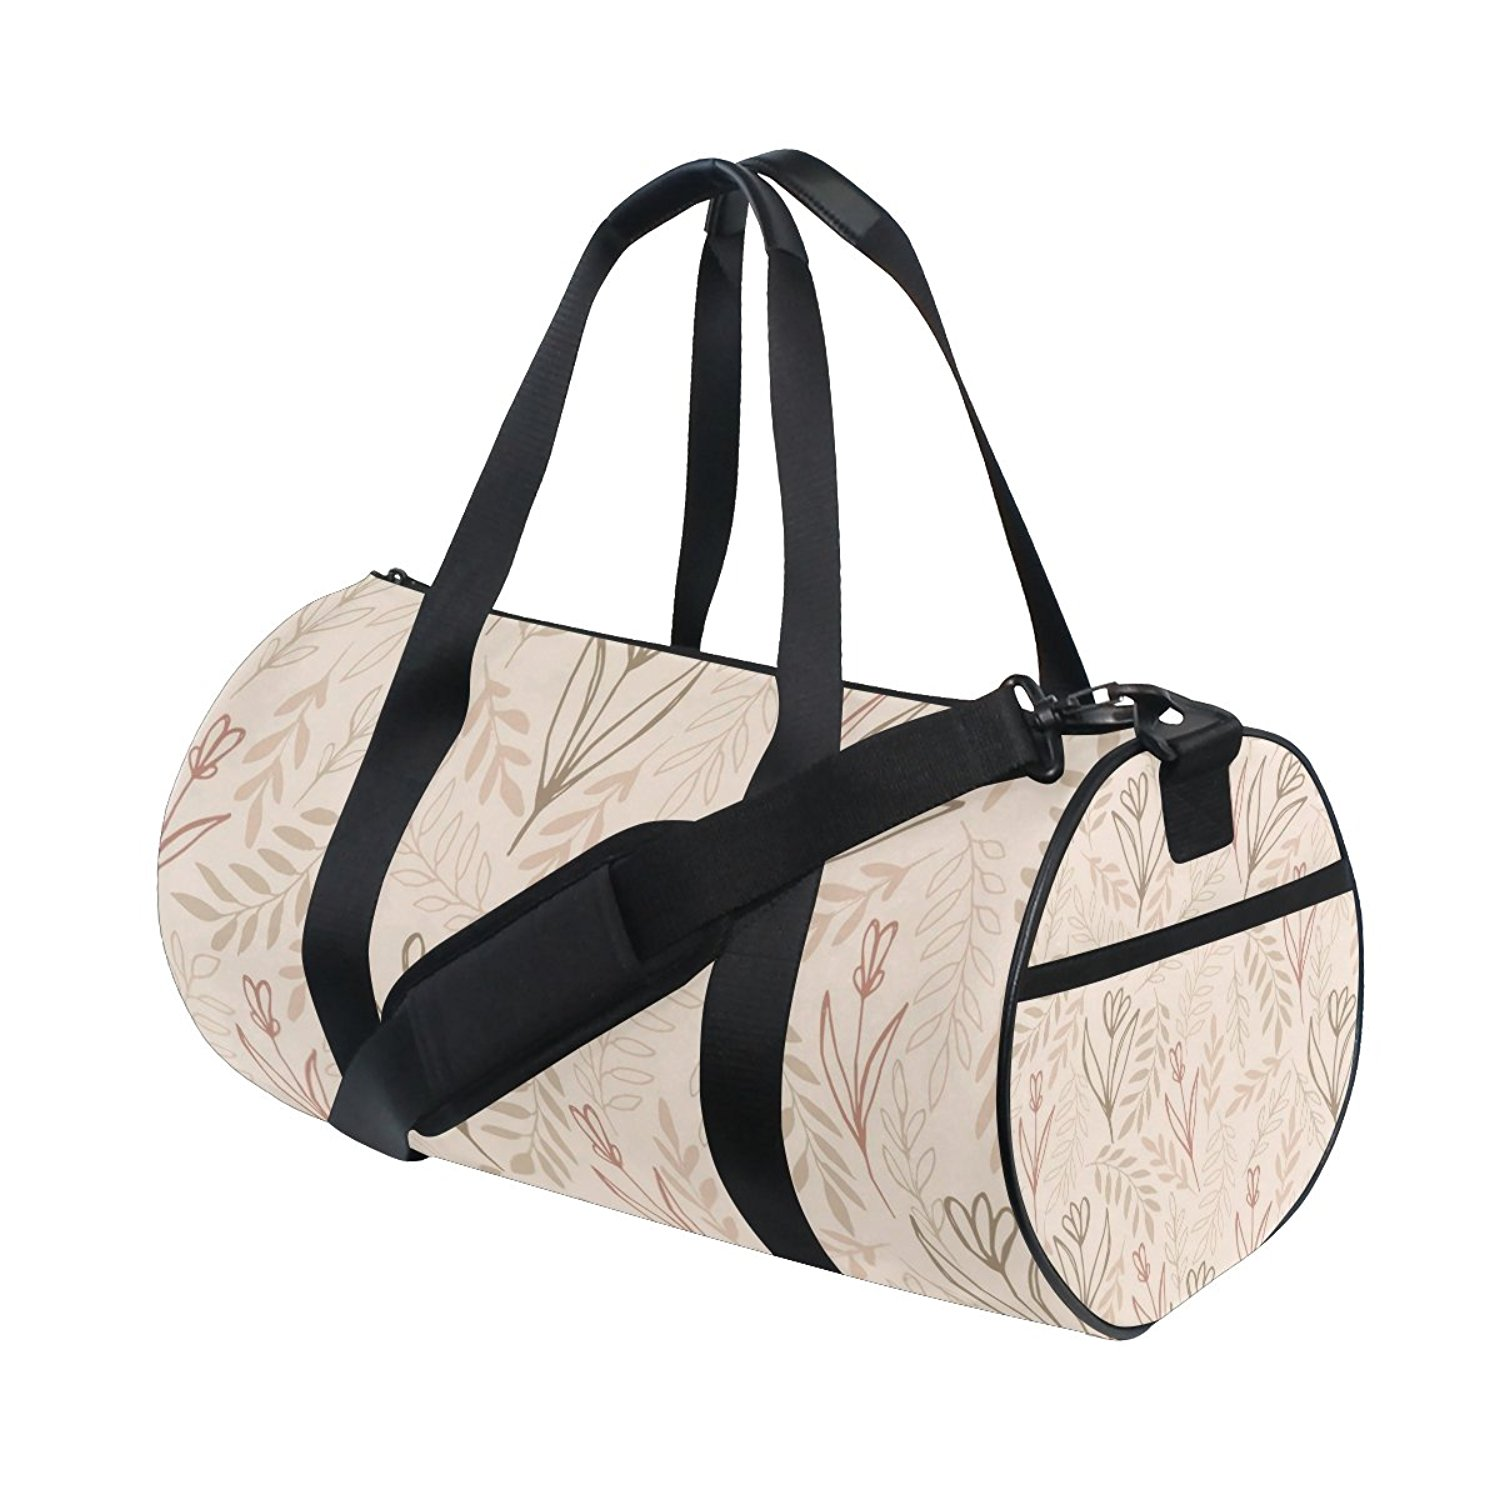 AHOMY Leaf Flower Tree Branches Pattern Lightweight Sports Gym Bag Small Duffel Bag Fashion Barrel Travel Fitness Tote Bag for Men and Women